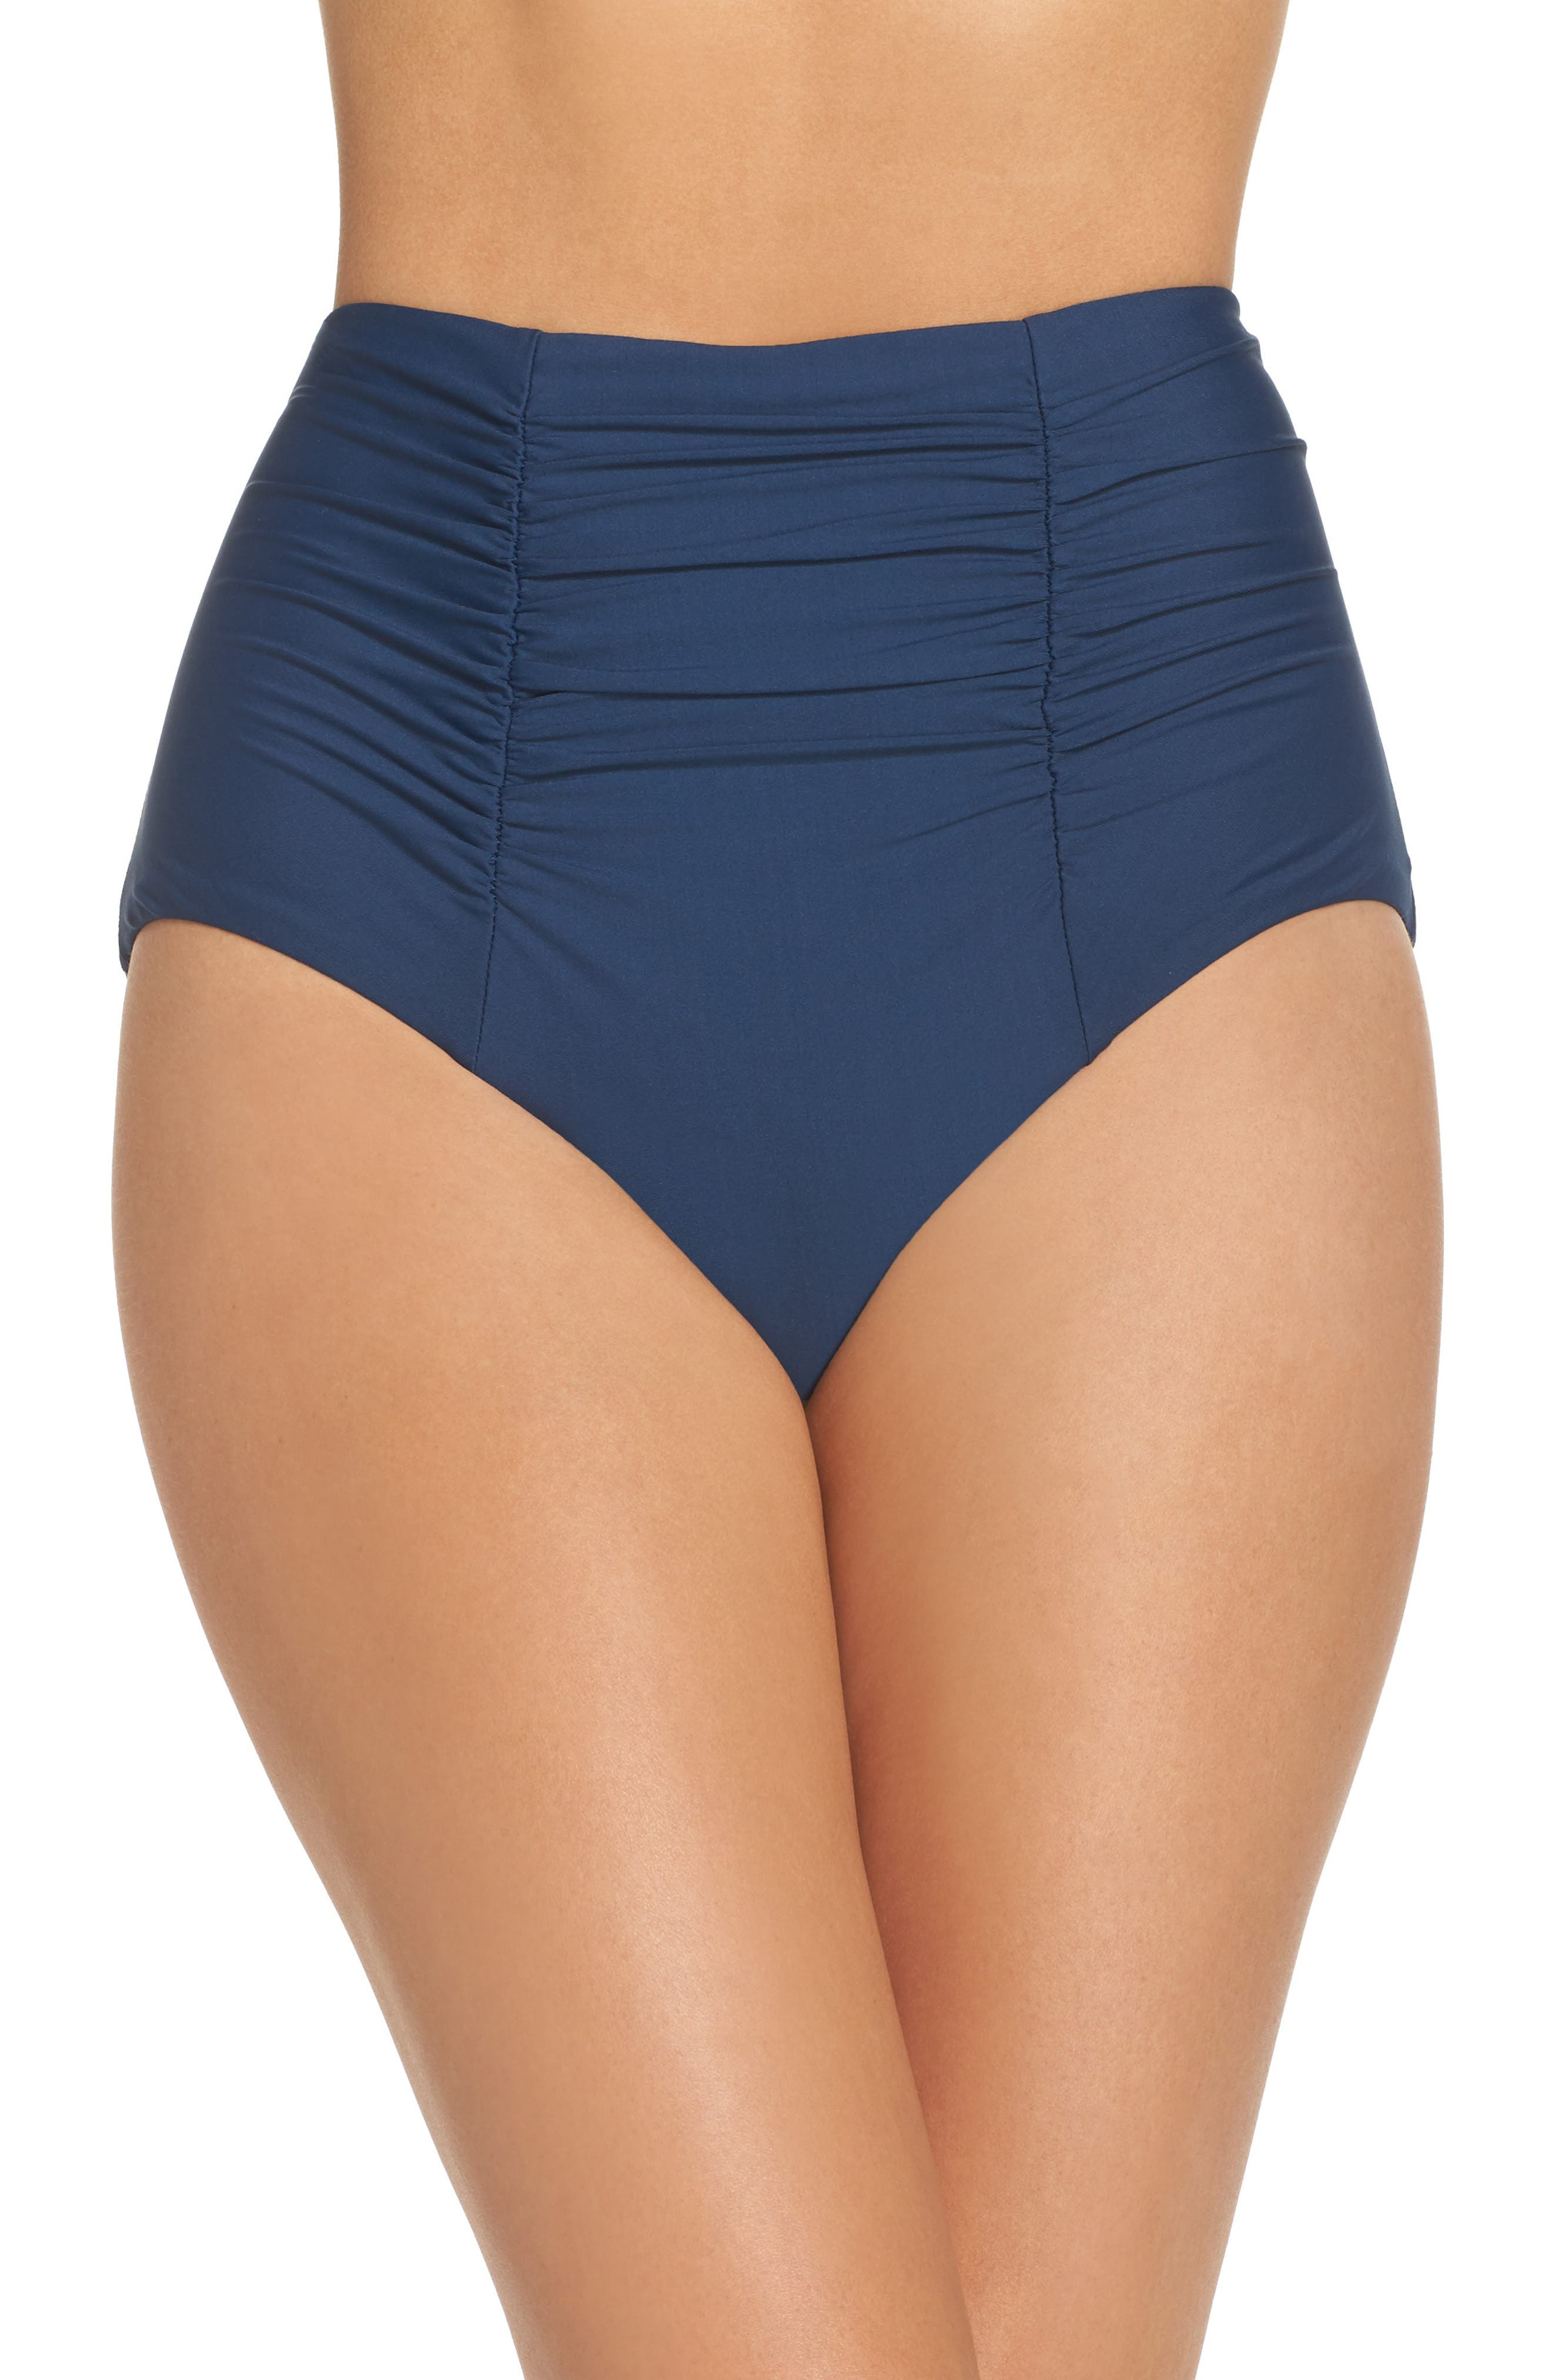 Alternate Image 1 Selected - Becca Color Code High Waist Bikini Bottoms